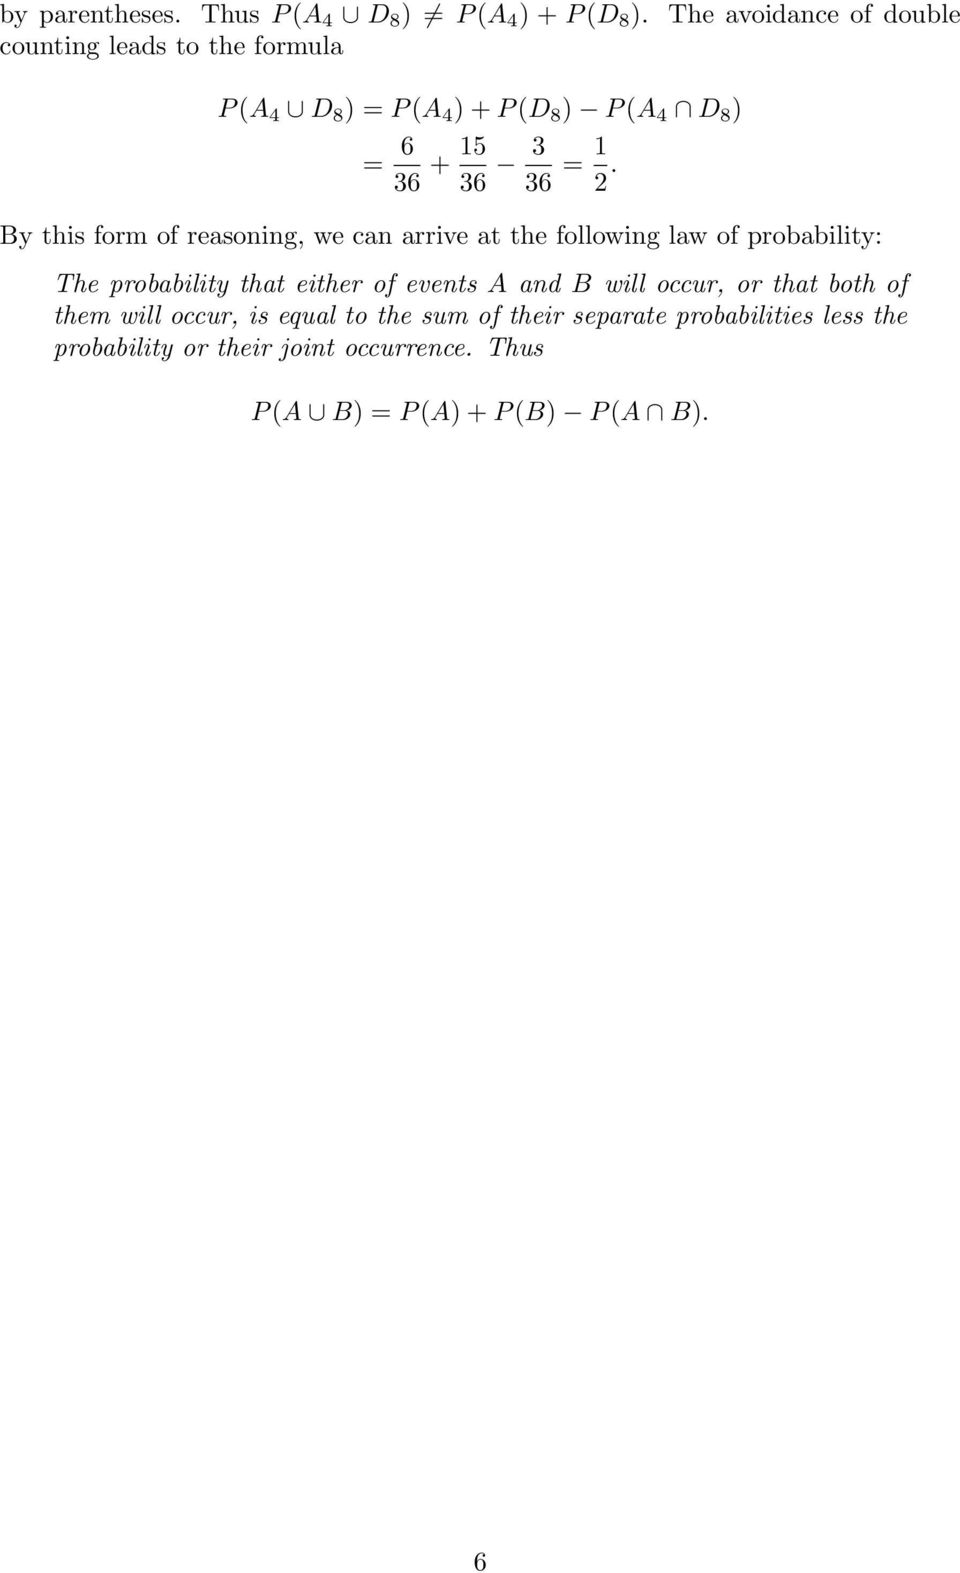 1 2. By this form of reasoning, we can arrive at the following law of probability: The probability that either of events